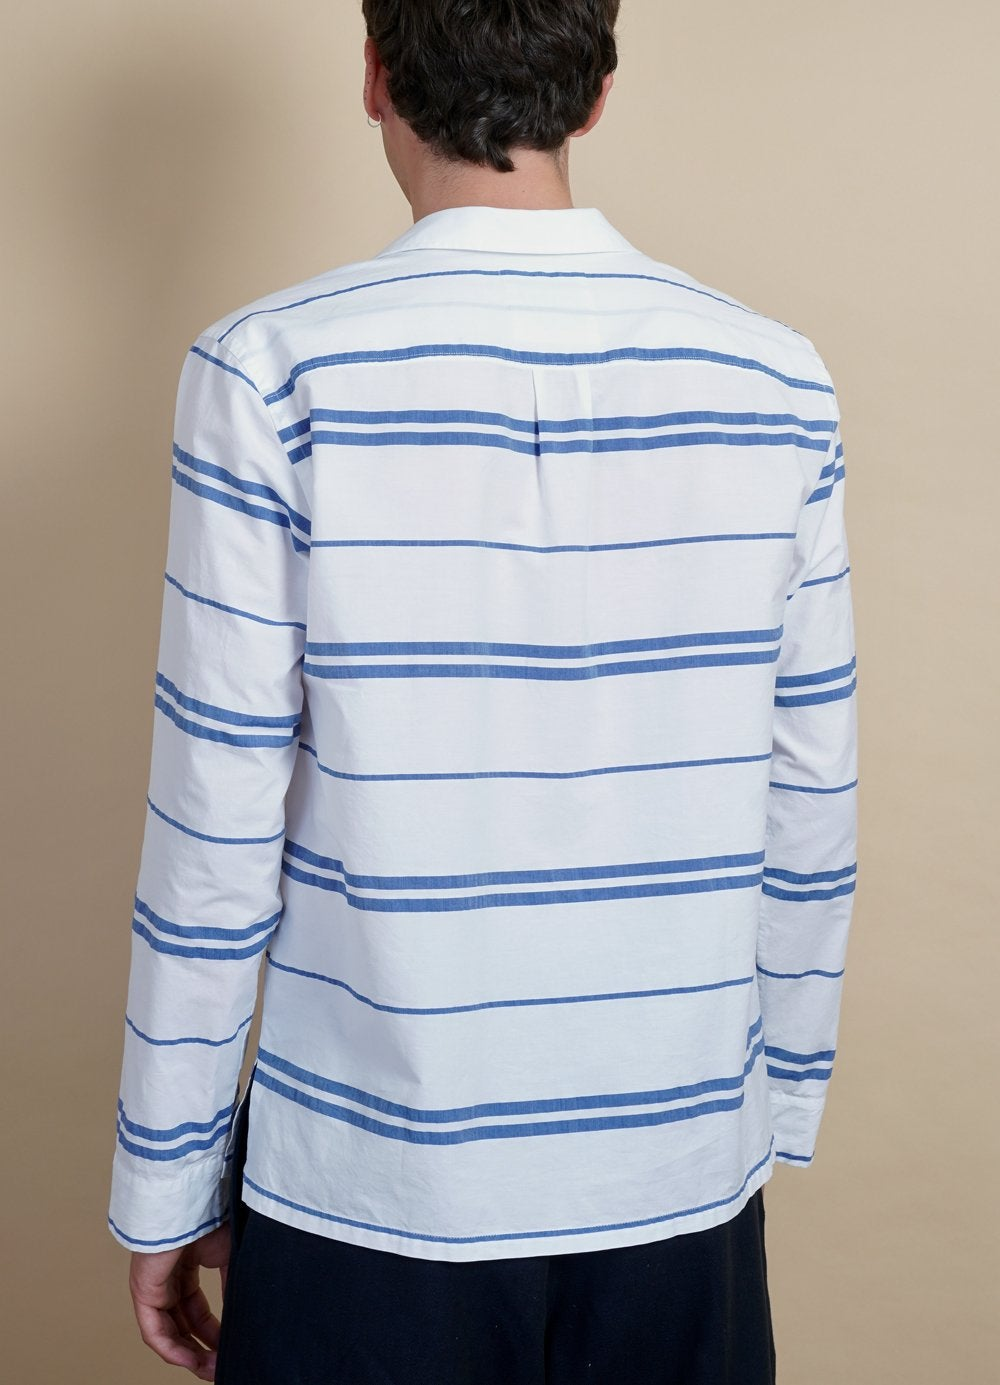 Hansen Garments MARIUS | Casual Pull On Shirt | White Stripes